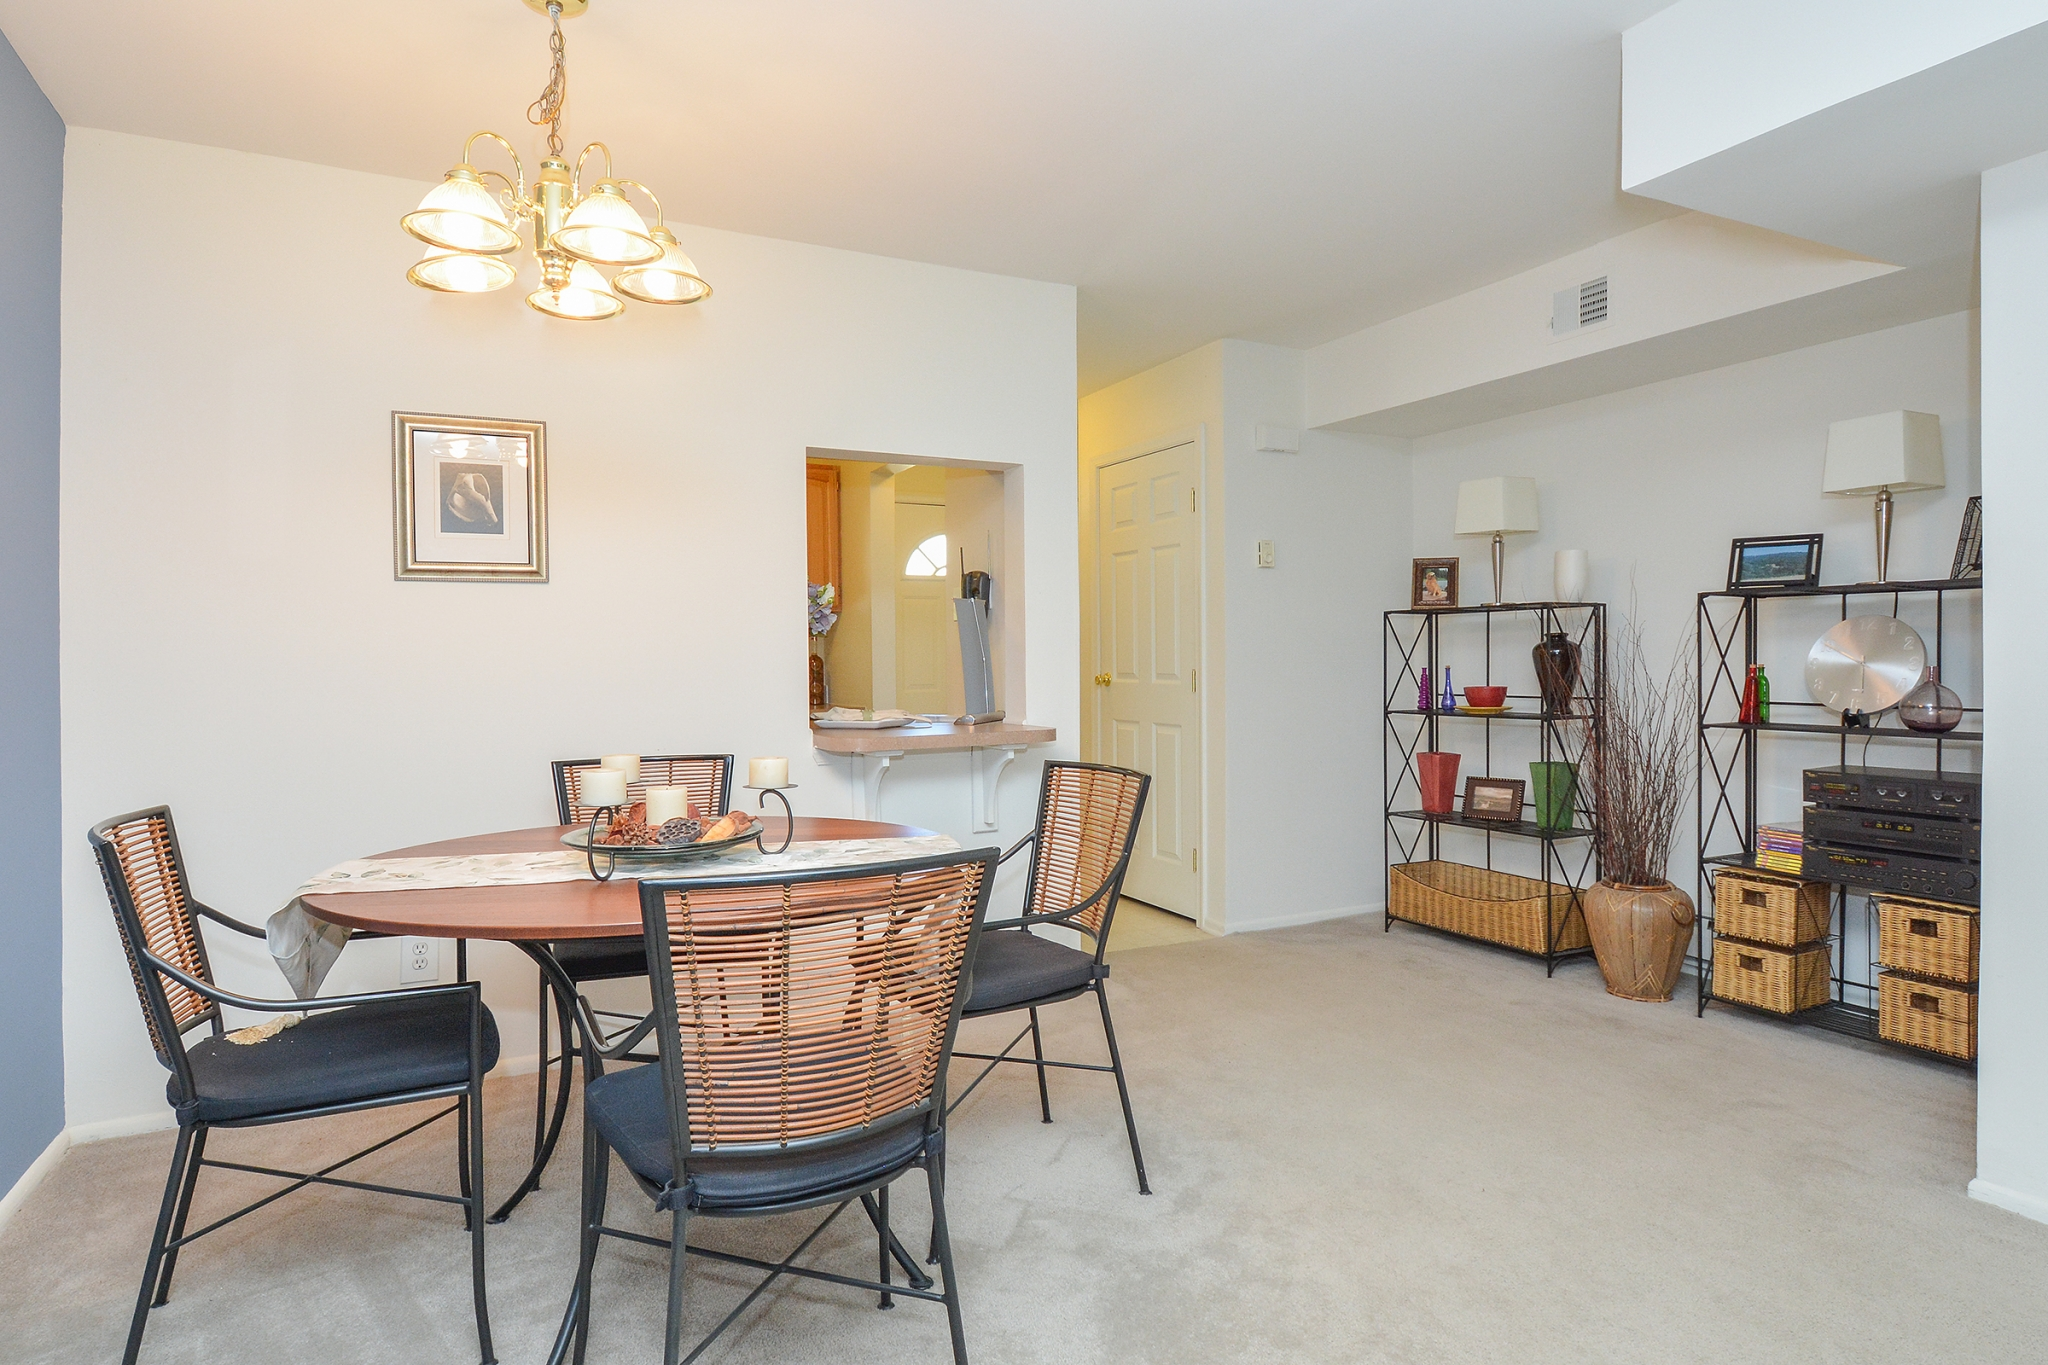 Wyntre Brooke Sample Dining Room with Storage Space | Apartments Near West Chester